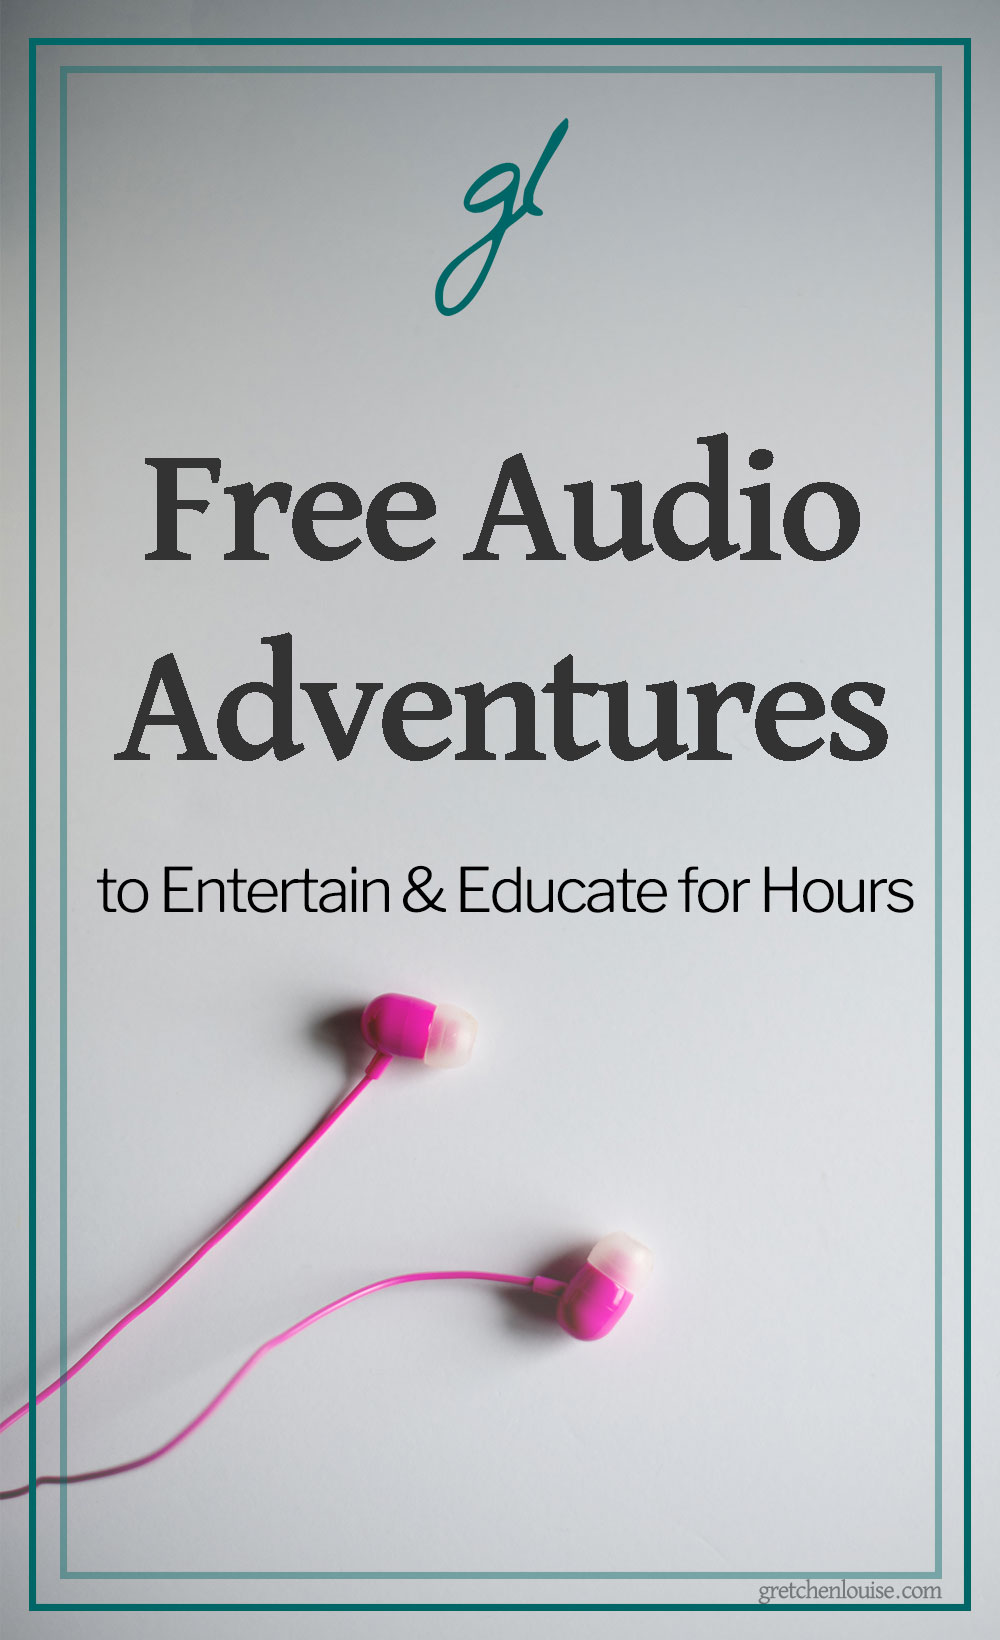 Audio adventures are a budget-friendly, germ-free way to entertain the whole family. Nothing fills the extra hours in our home better than audio adventures! via @GretLouise